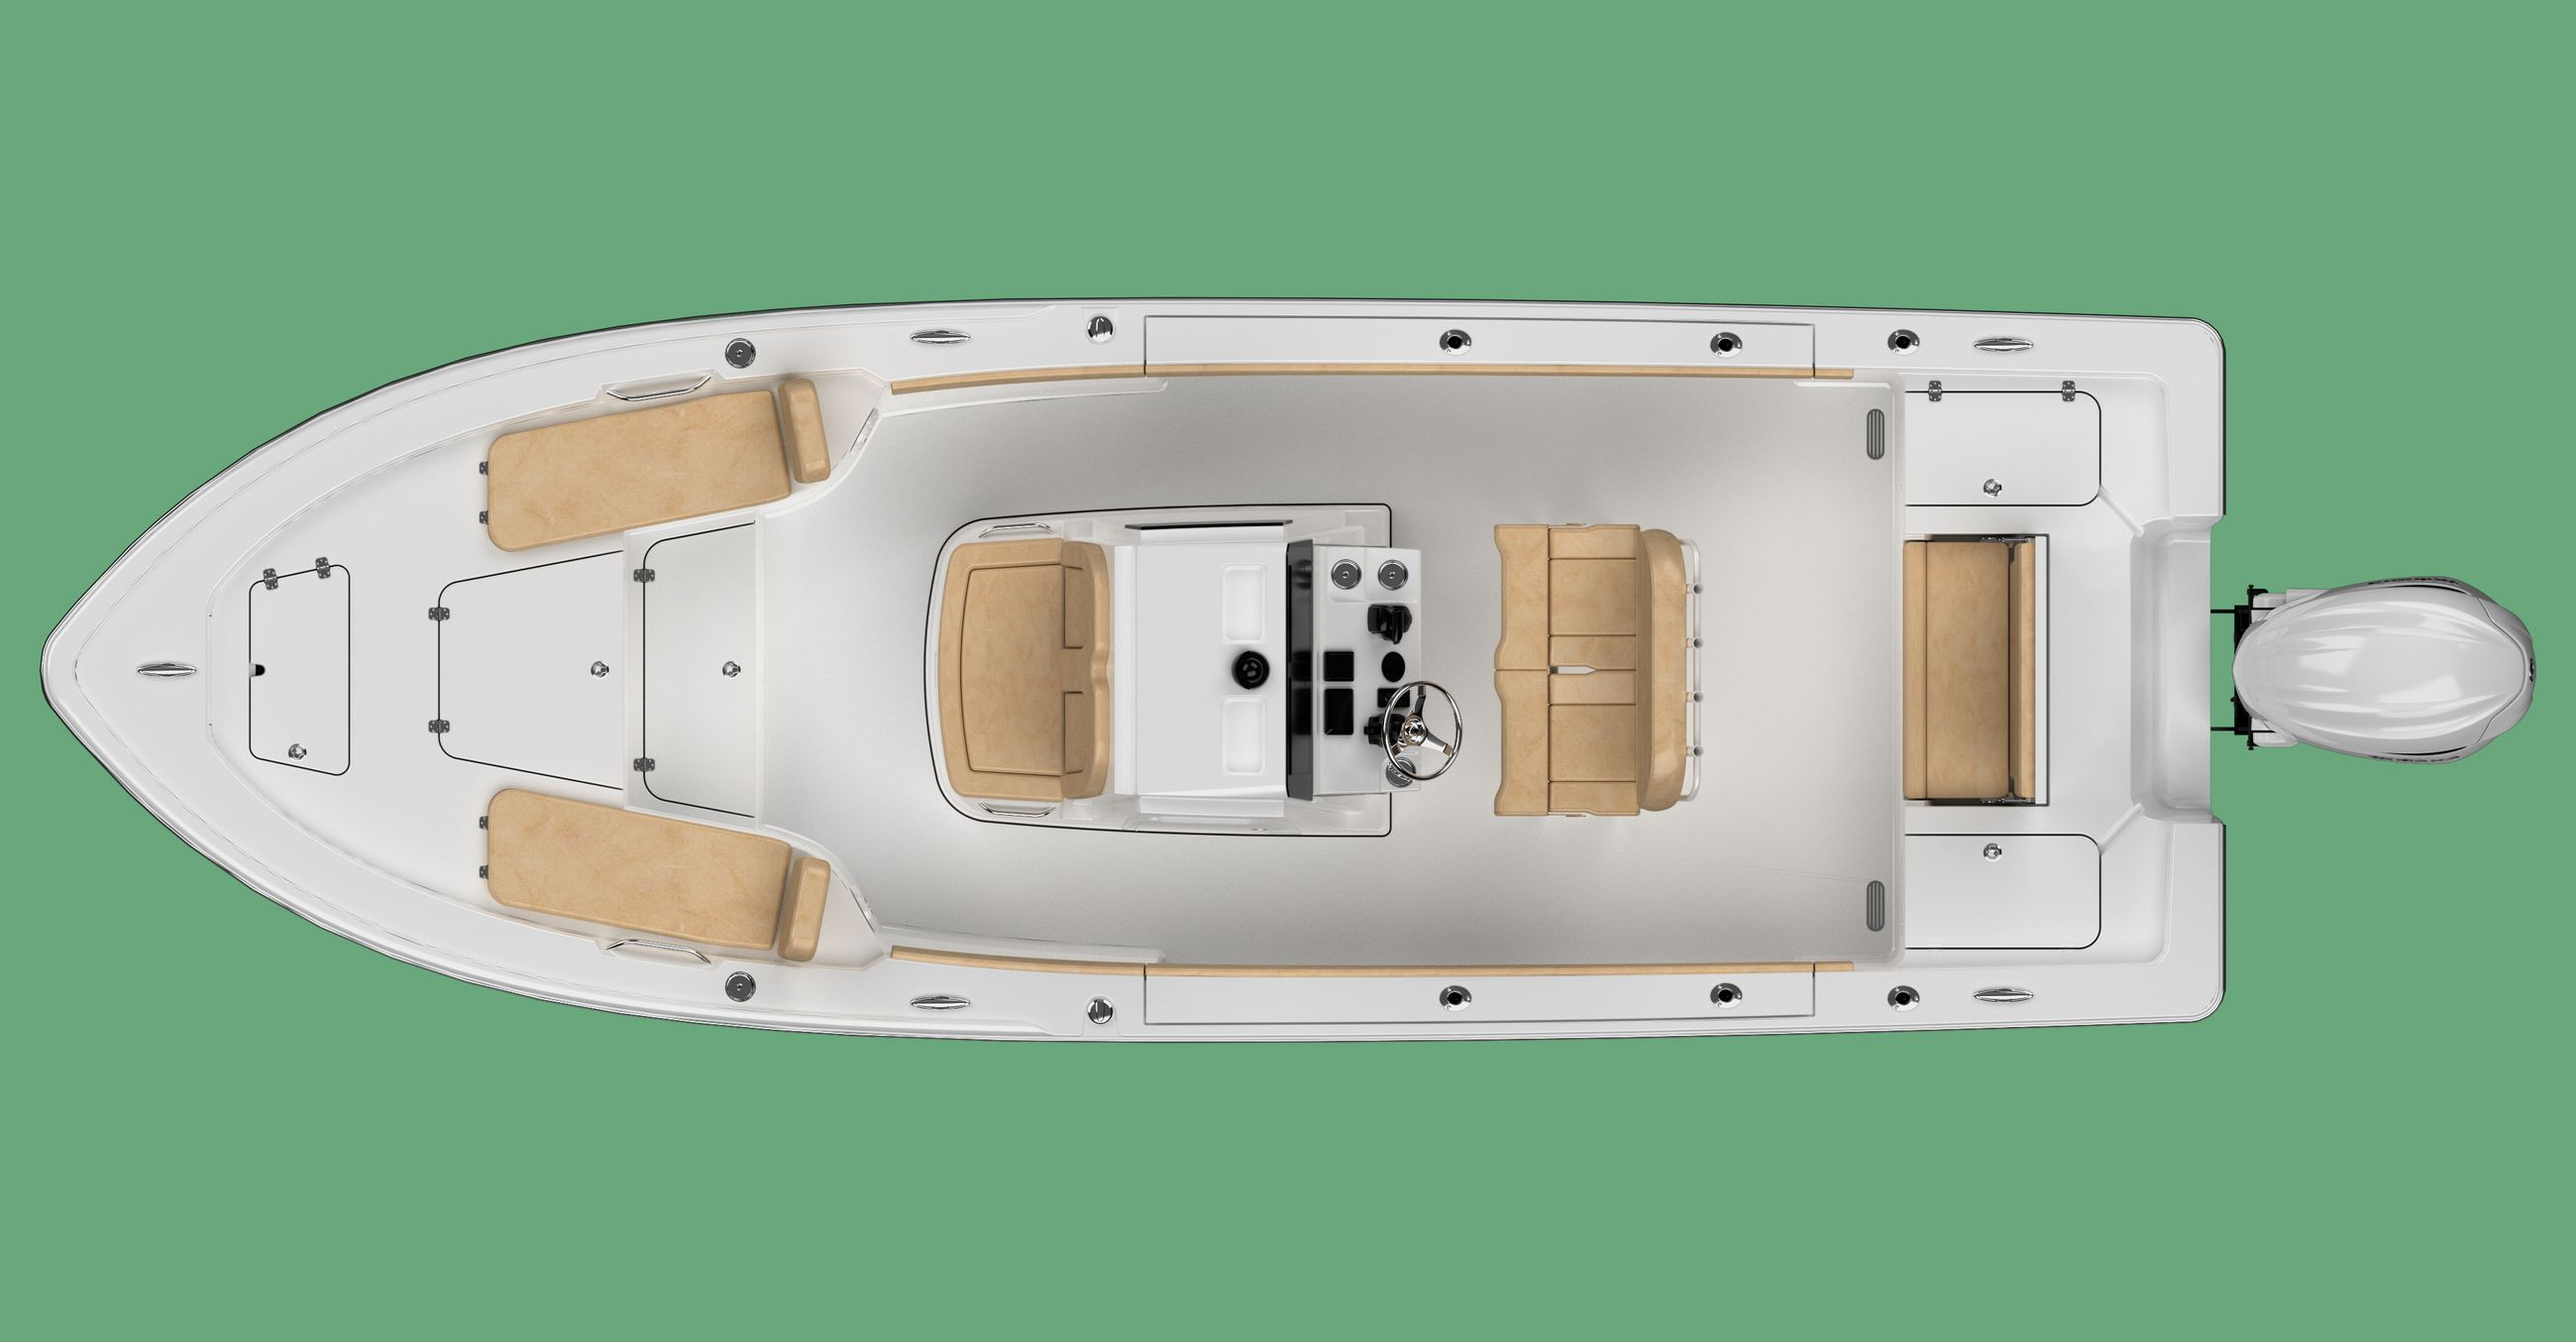 Large detail image of the Masters 247 Bay Boat